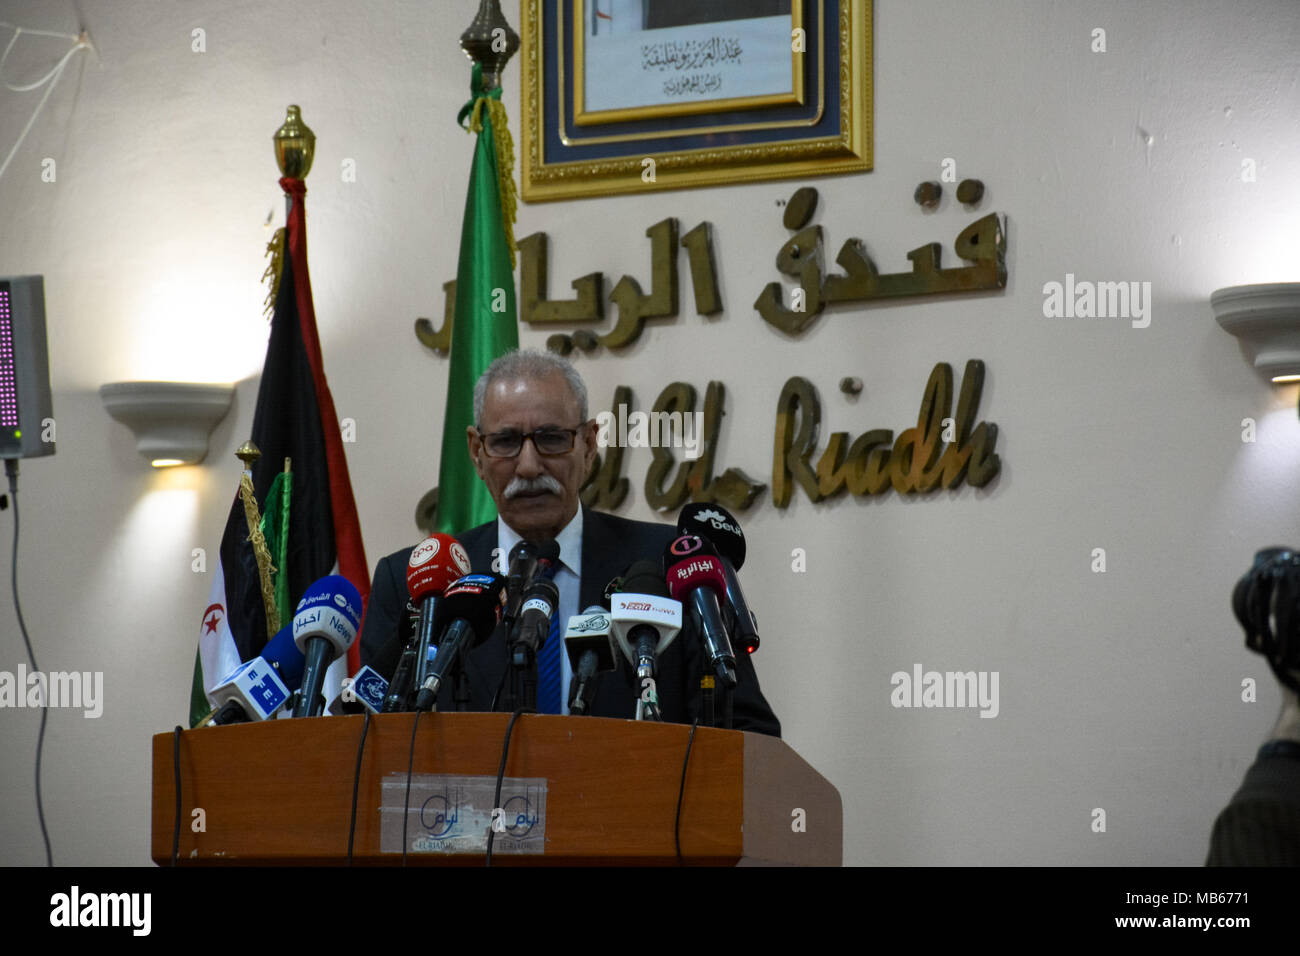 President of the Saharawi Arab Democratic Republic (SADR) Brahim Ghali at the Conference 'Peoples' Right to Resistance: the Case of Sahrawi People' - Stock Image